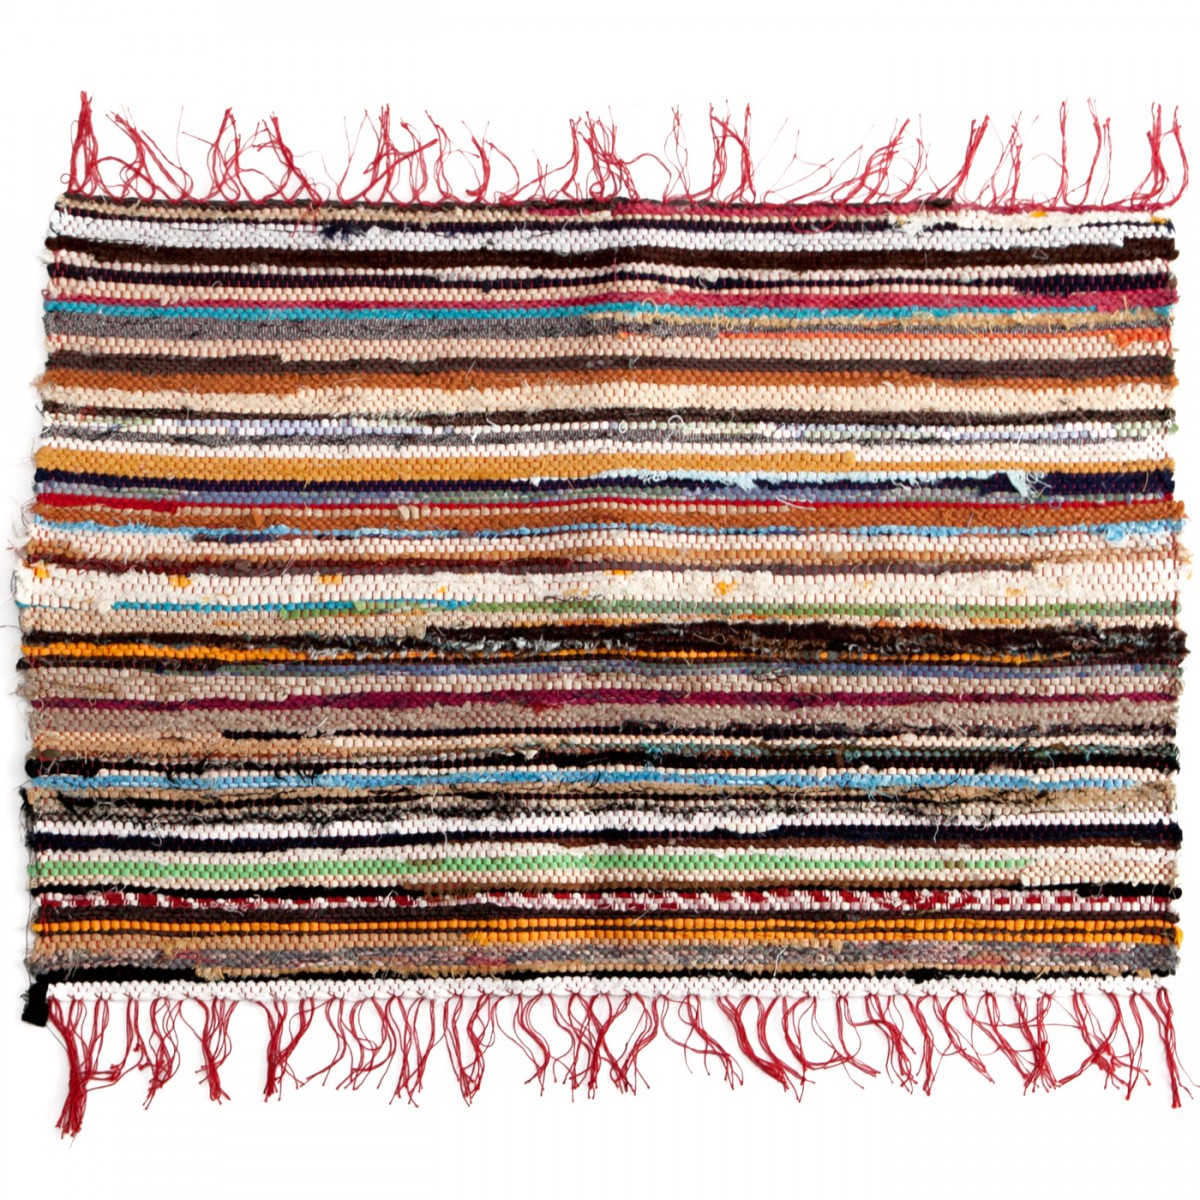 Rag Rug Recycled Clothes-1